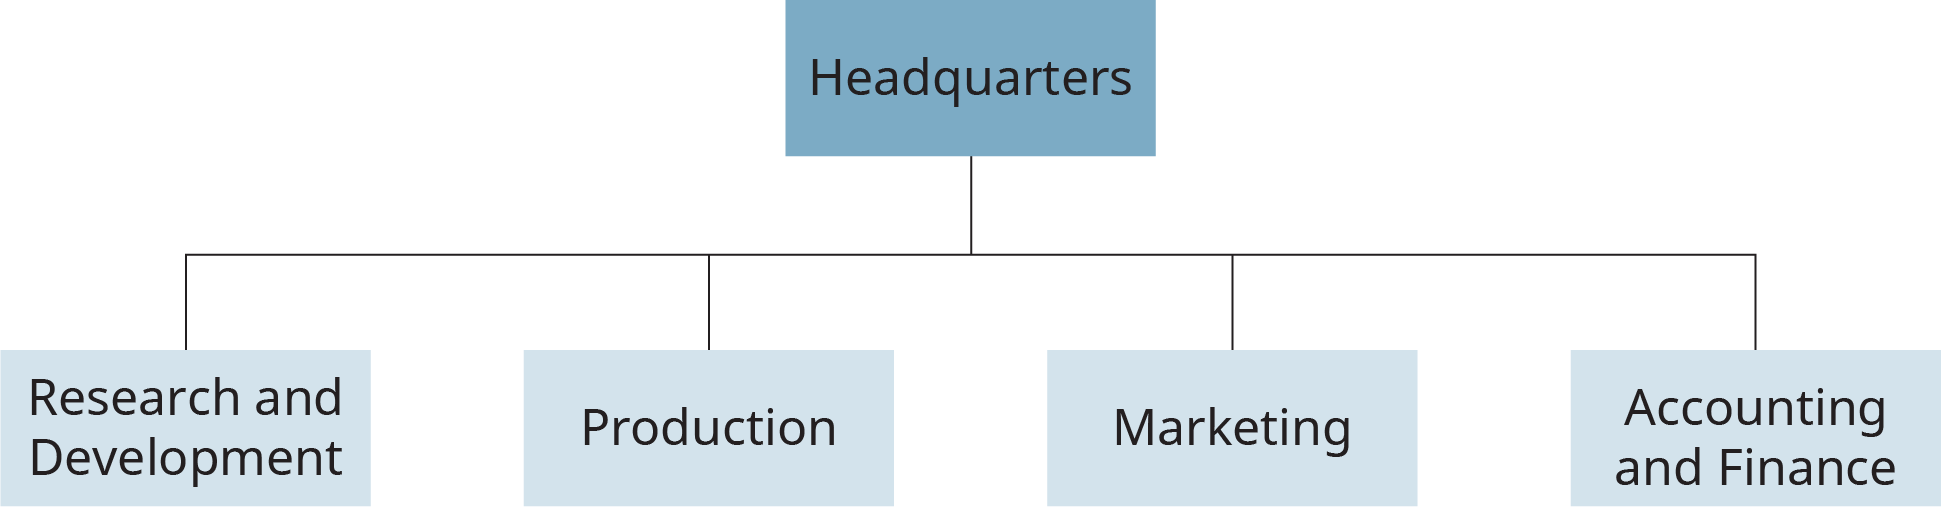 "A flowchart shows an example of a functional structure in an organization. It shows the main branch labeled ""Headquarters"" divided into four sub-branches labeled, ""Research and Development,"" ""Production,"" ""Marketing,"" and ""Accounting and Finance."""